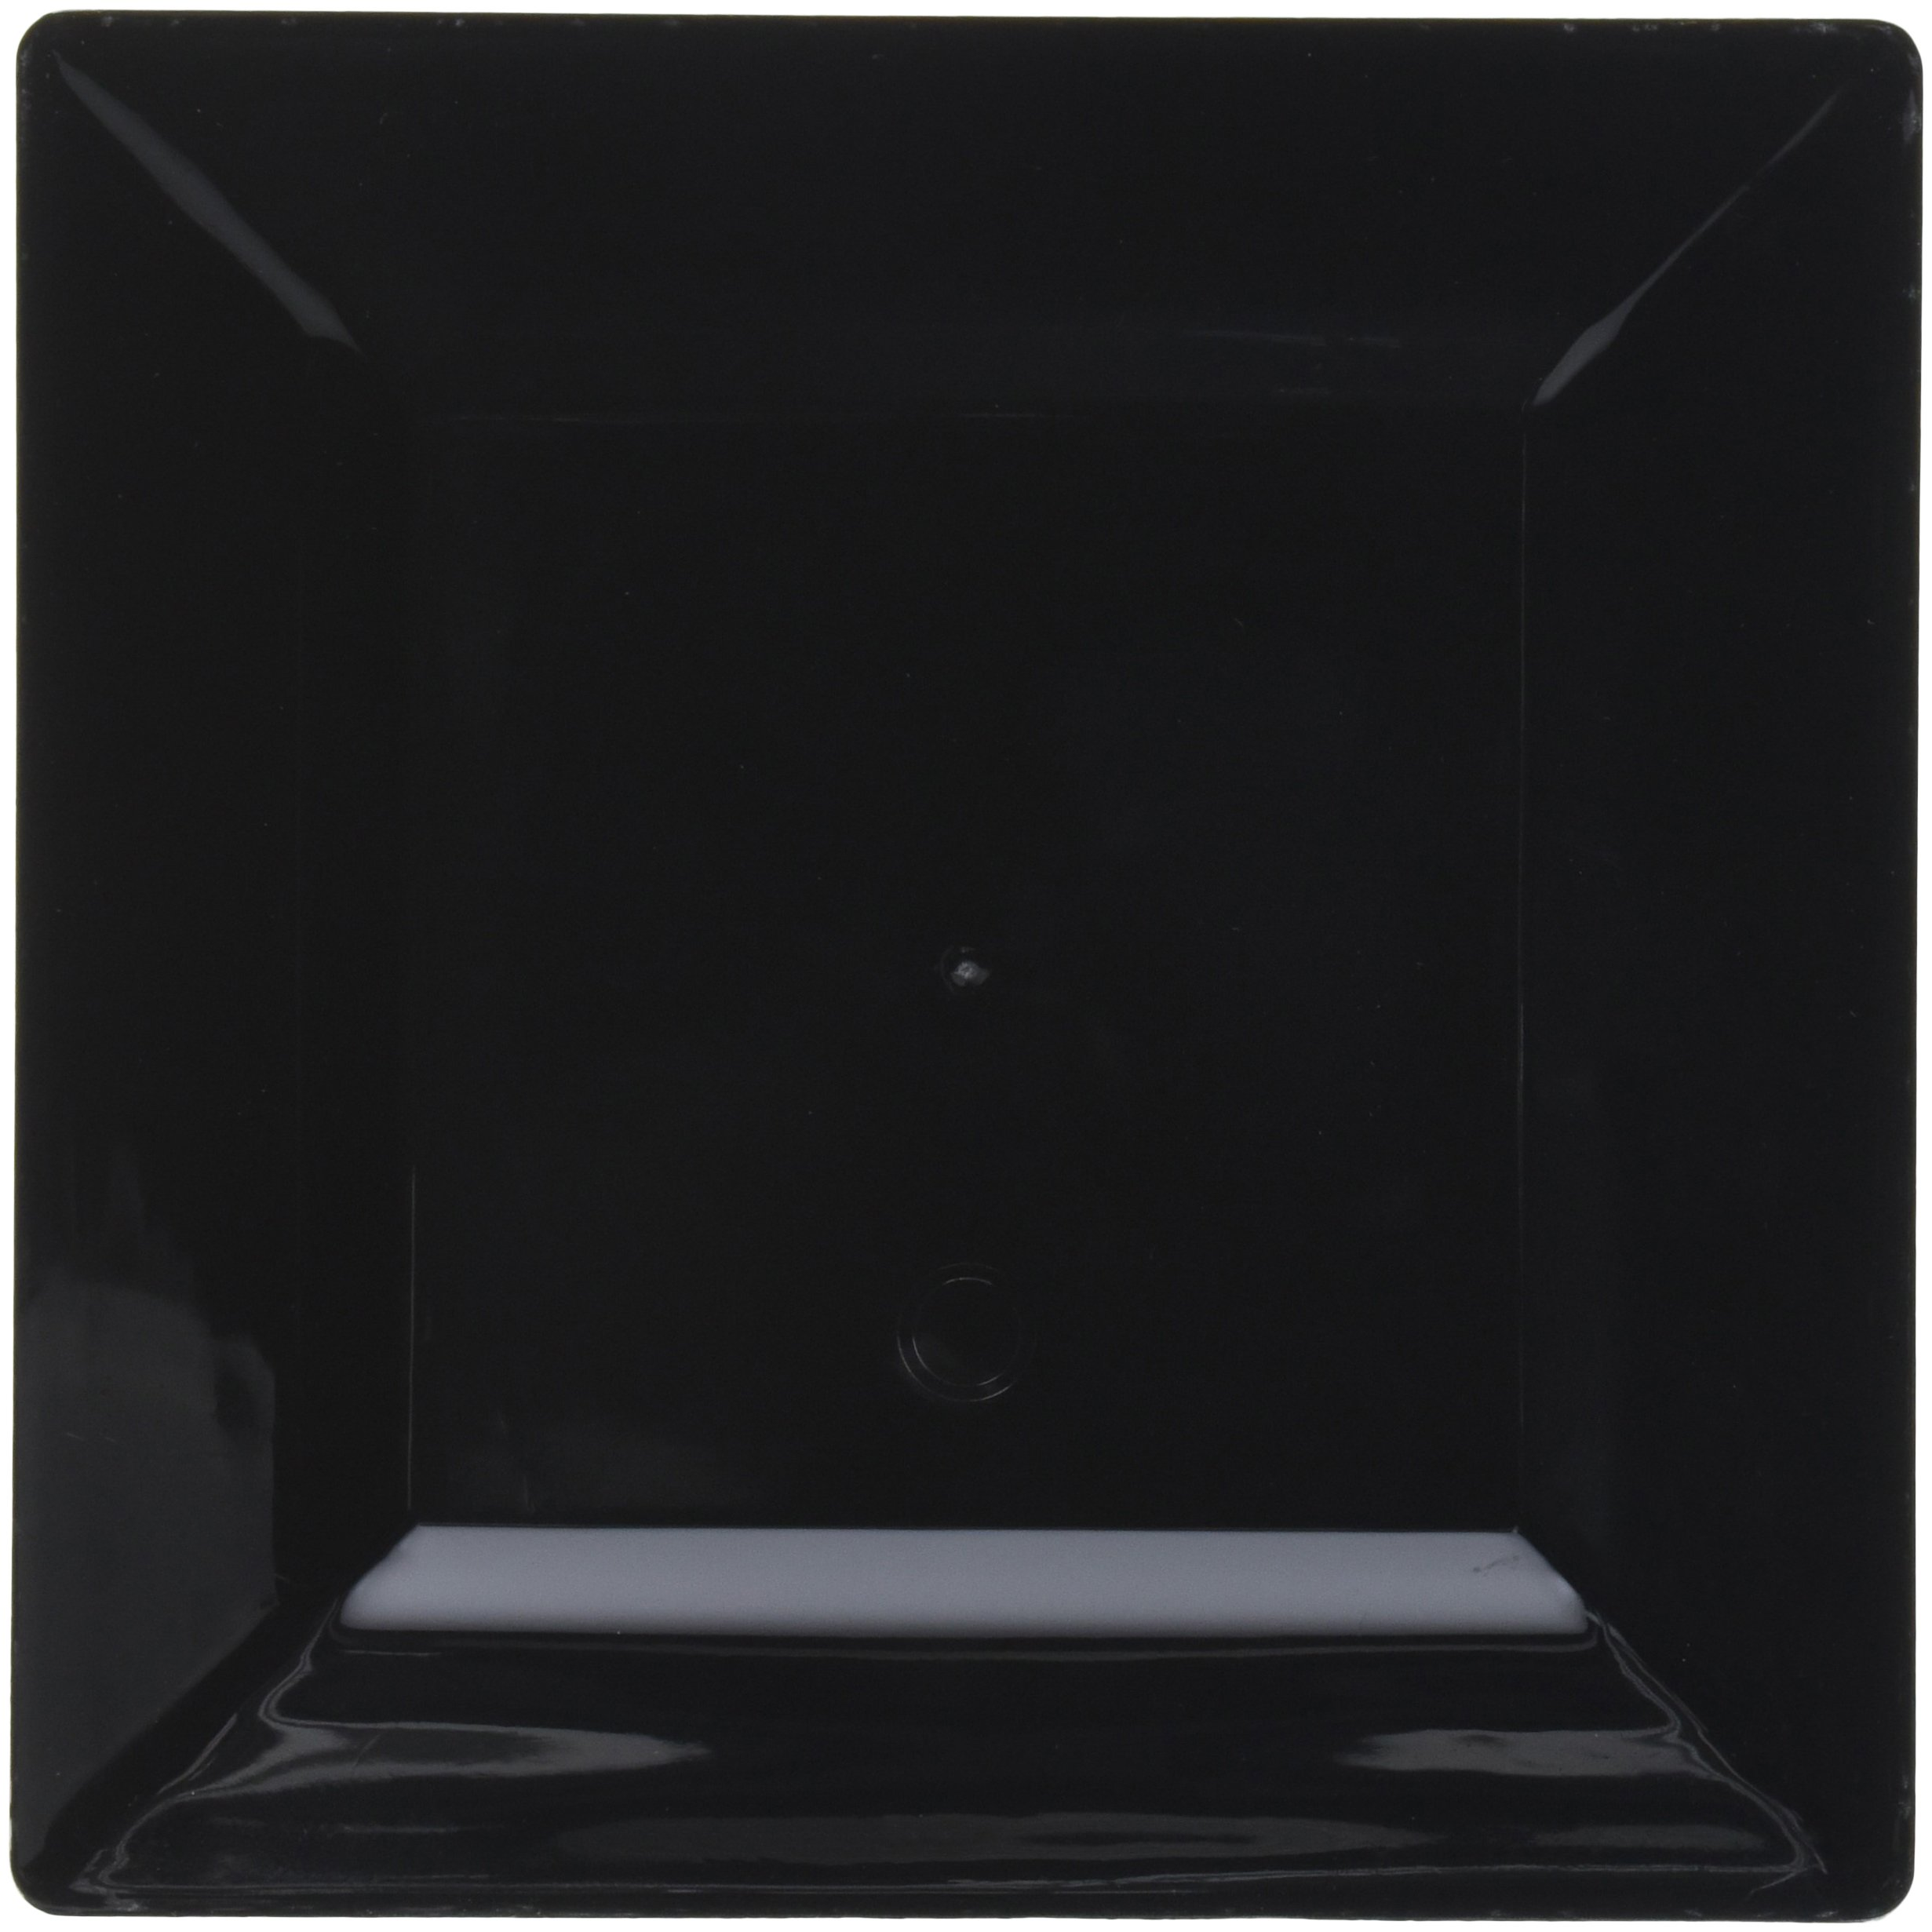 EMI Yoshi Koyal Square Dessert Plates, 6.5-Inch, Black, case of 12 sets of 10